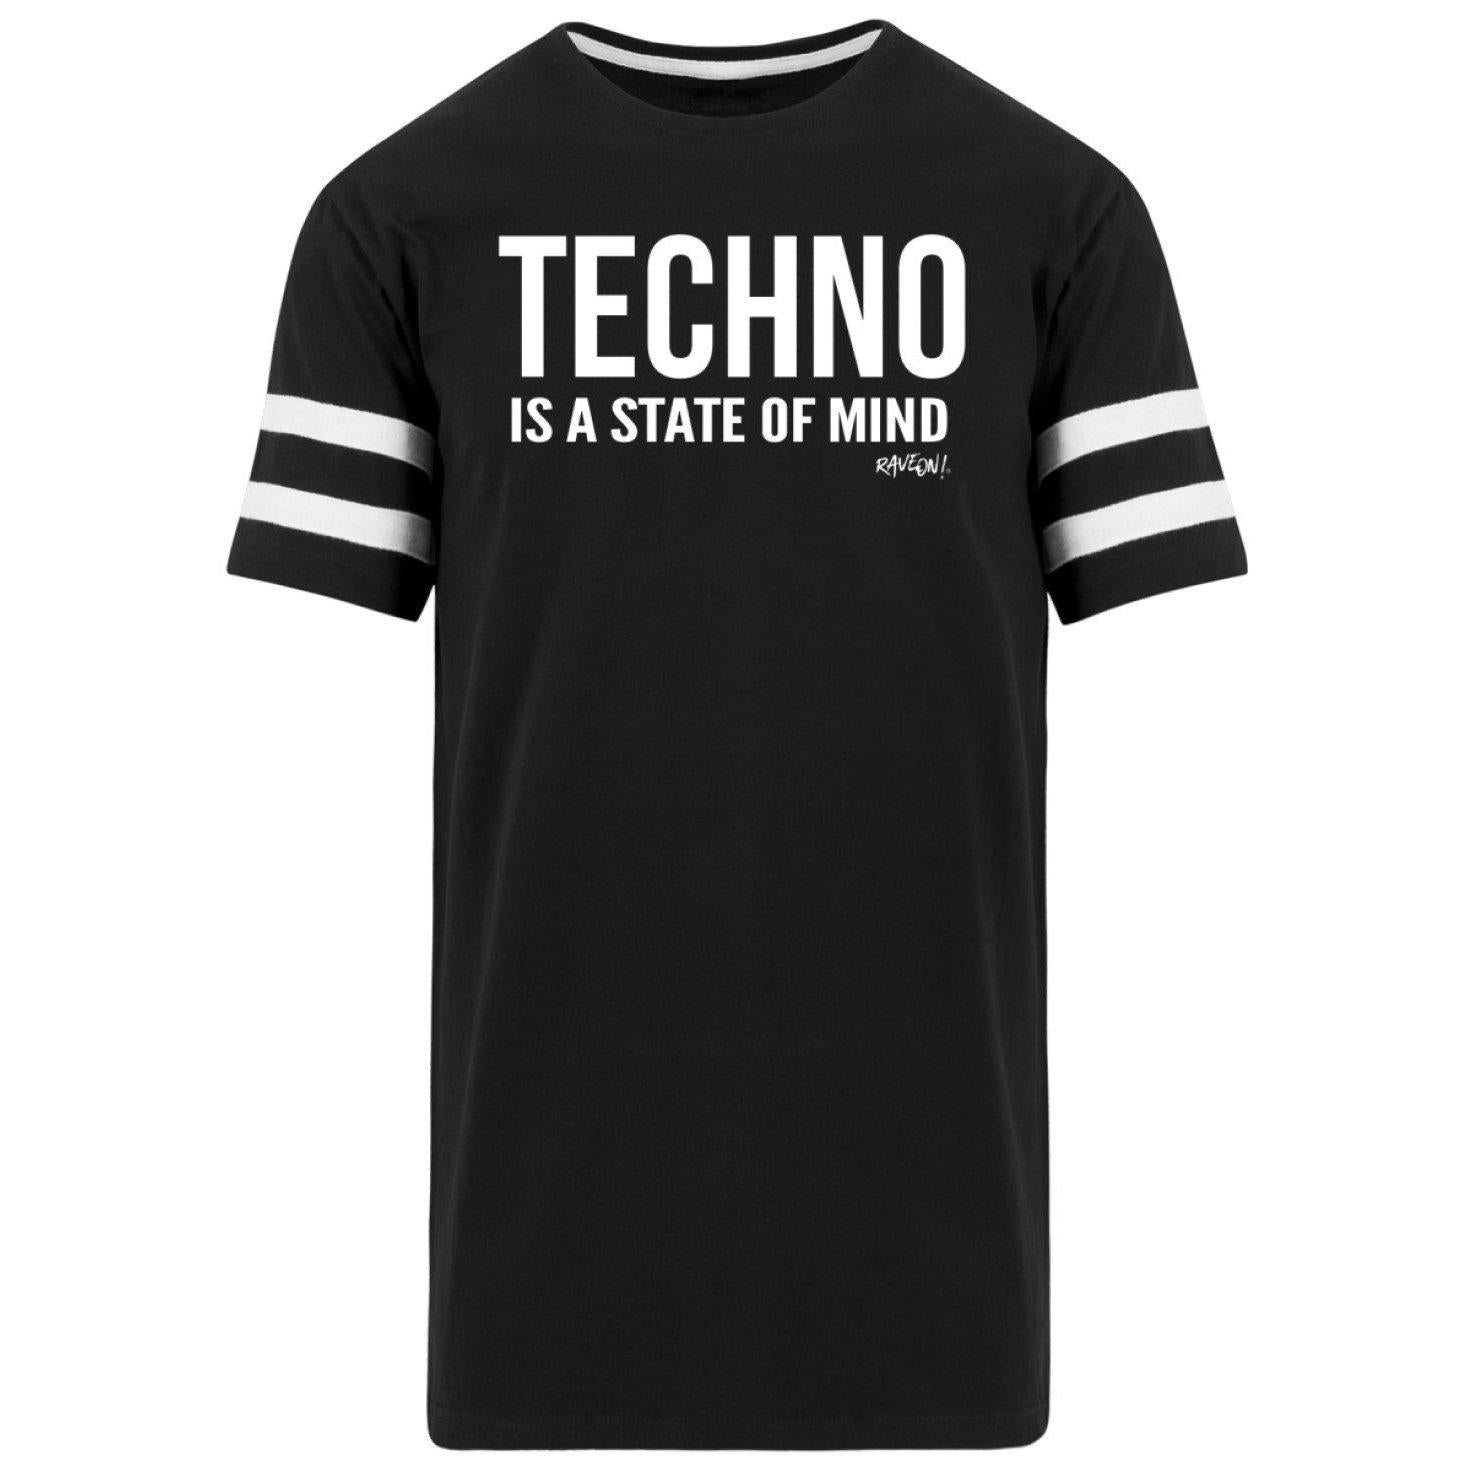 TECHNO IS A STATE OF MIND - Rave On!® - Herren Striped Long Shirt Striped Long Shirt Black / S - Rave On!® der Club & Techno Szene Shop für Coole Junge Mode Streetwear Style & Fashion Outfits + Sexy Festival 420 Stuff